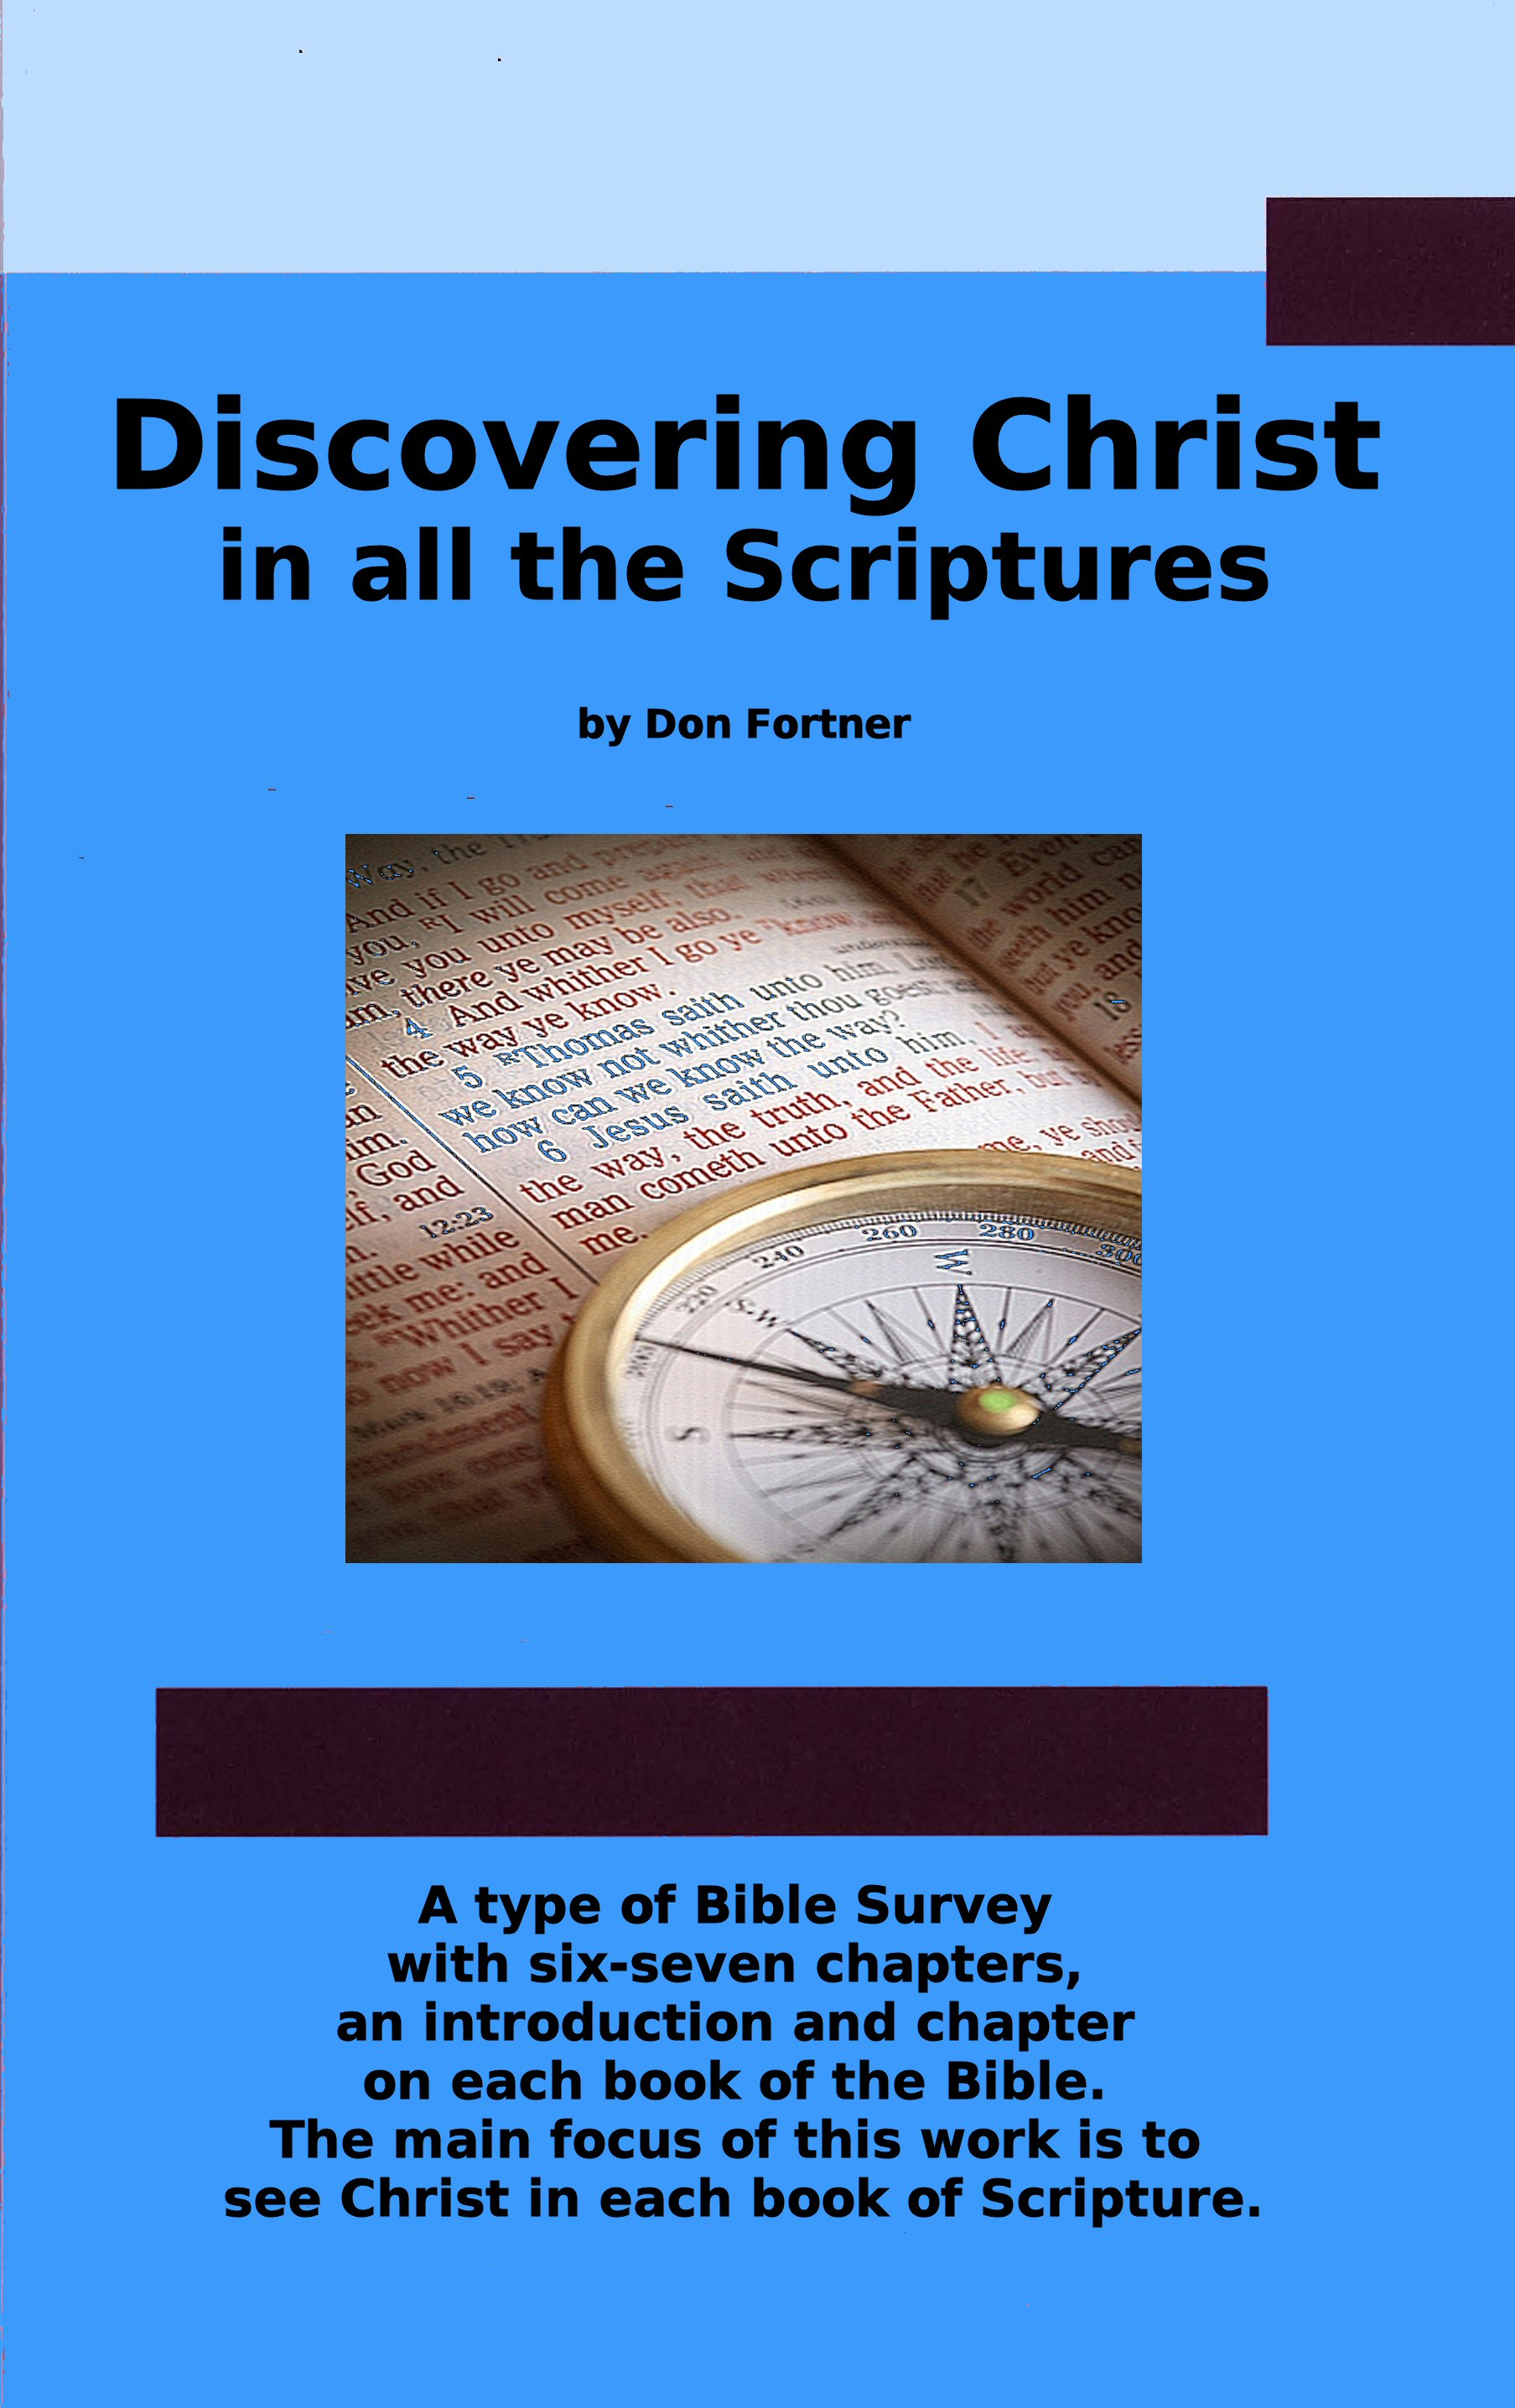 Discover Who You Are in Christ: Through the Scriptures